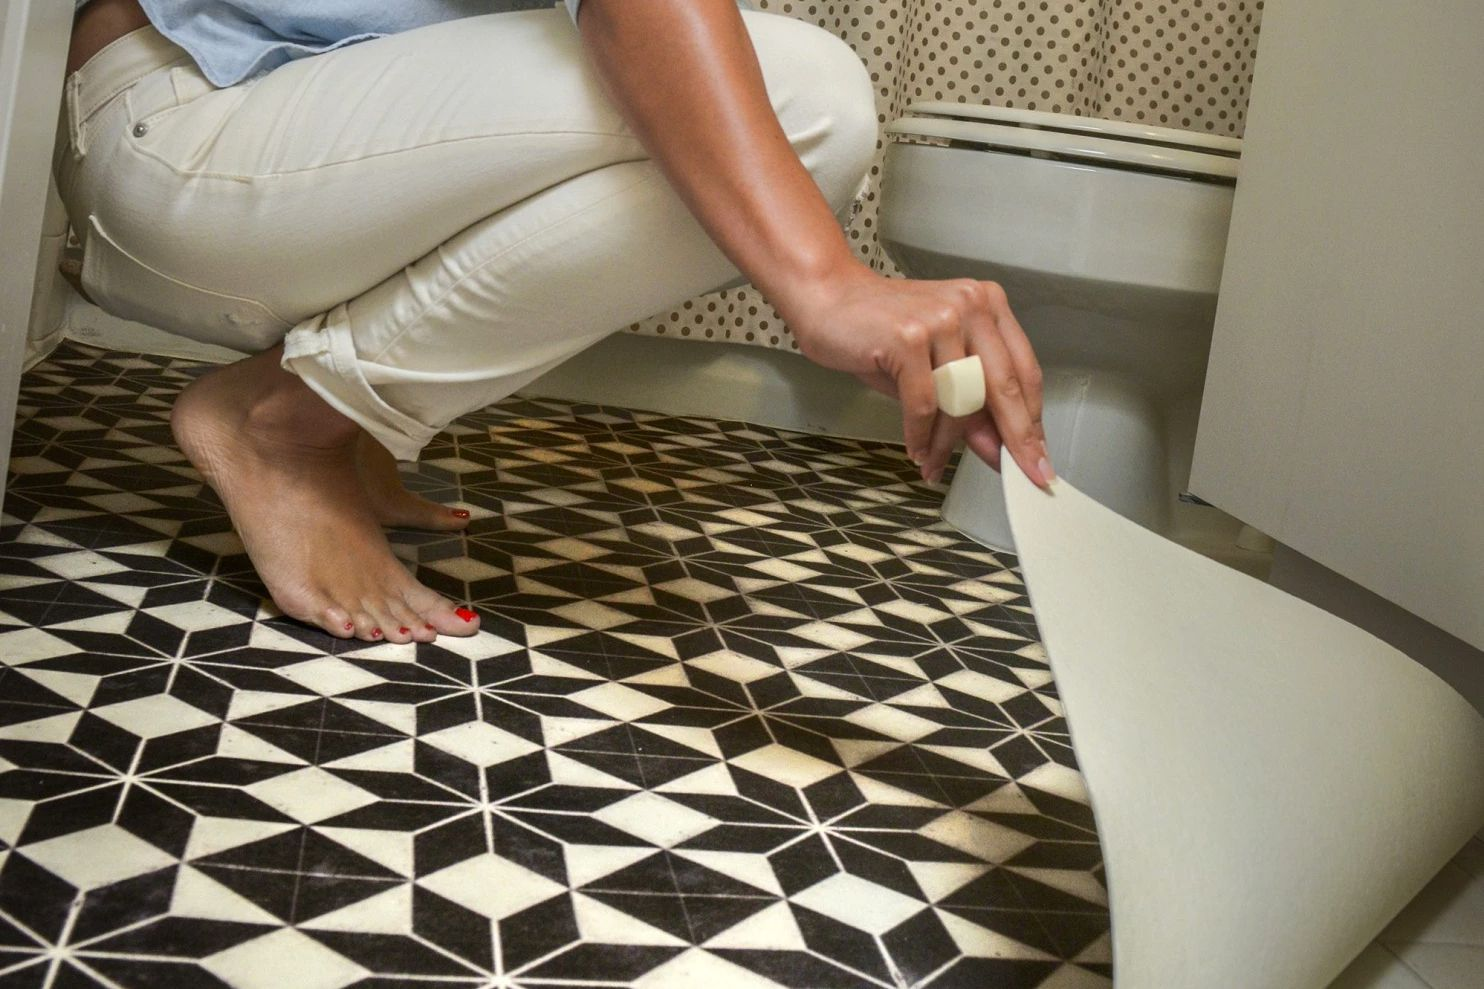 One of my favourite ideas is to cut out vinyl flooring to cover a floor you don't love.